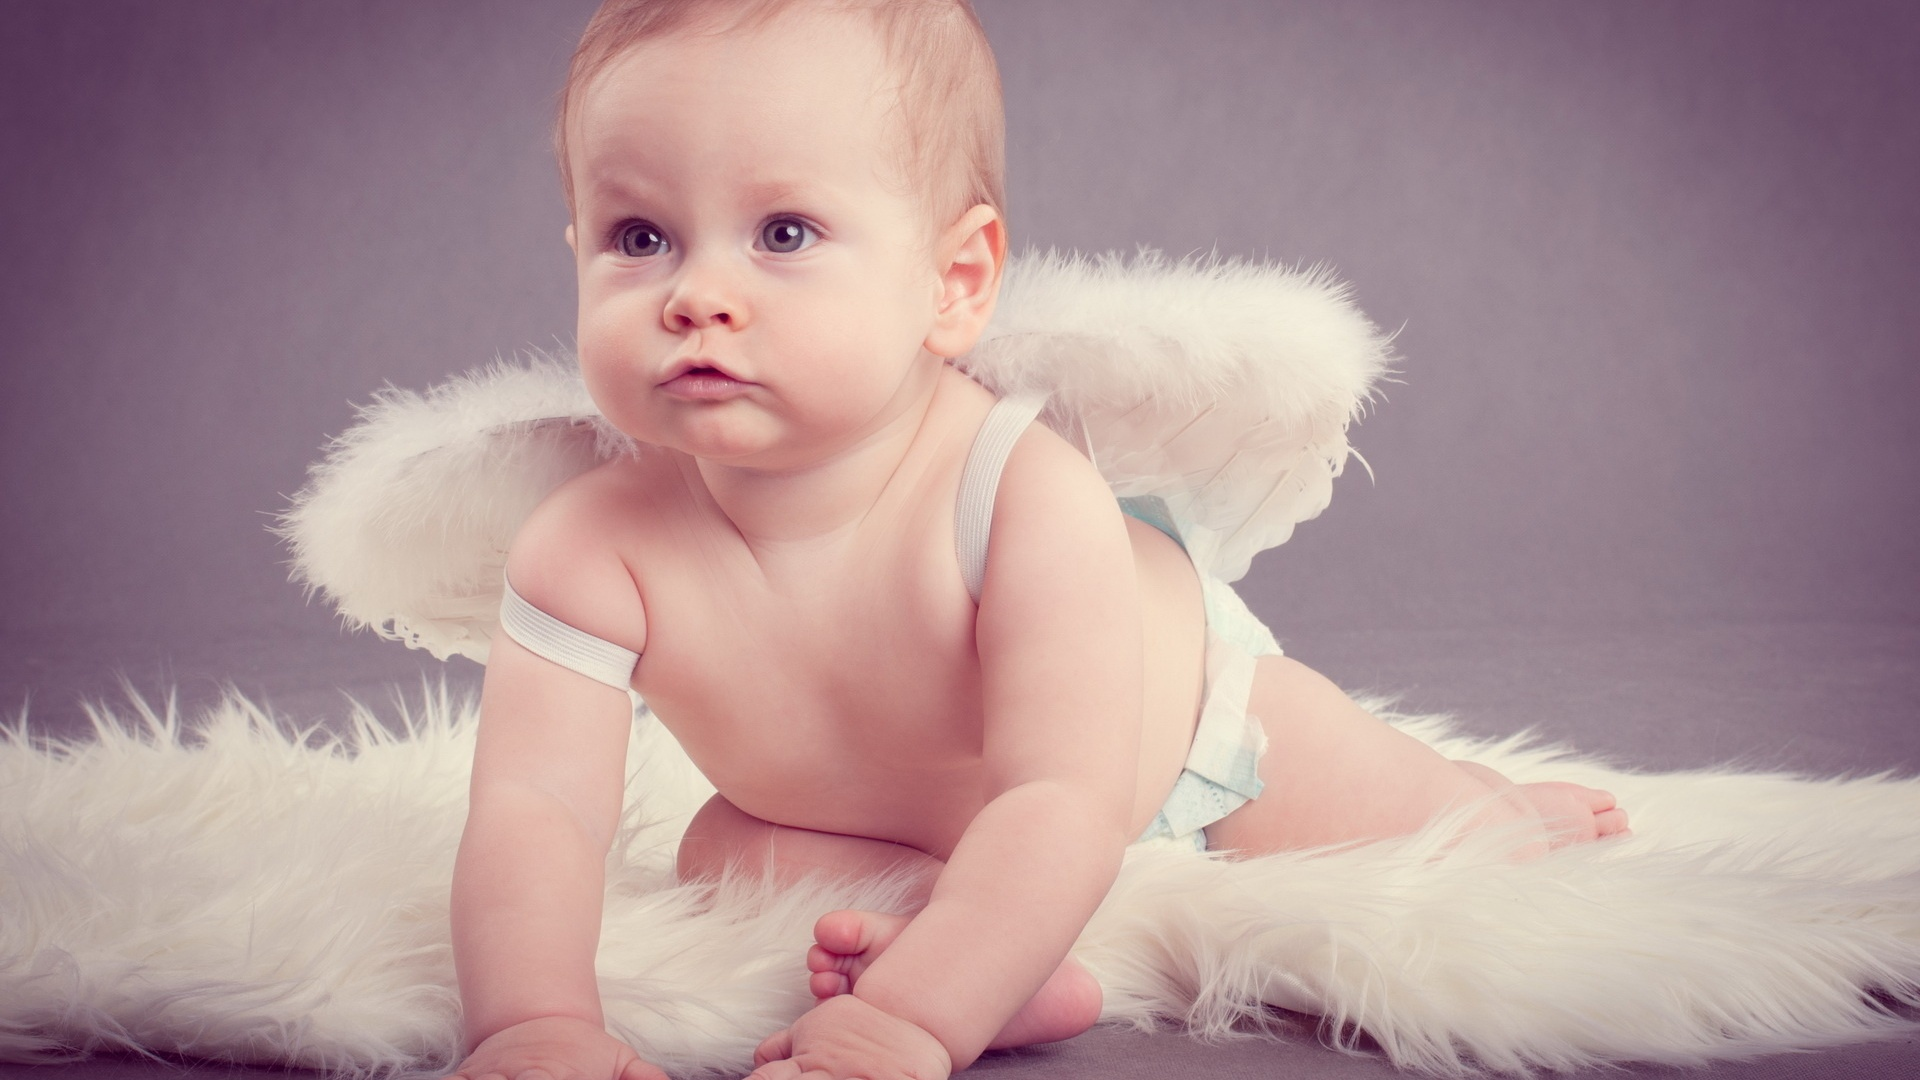 Baby angel with wings wallpapers 1920x1080 388053 - Angel baby pictures wallpapers ...